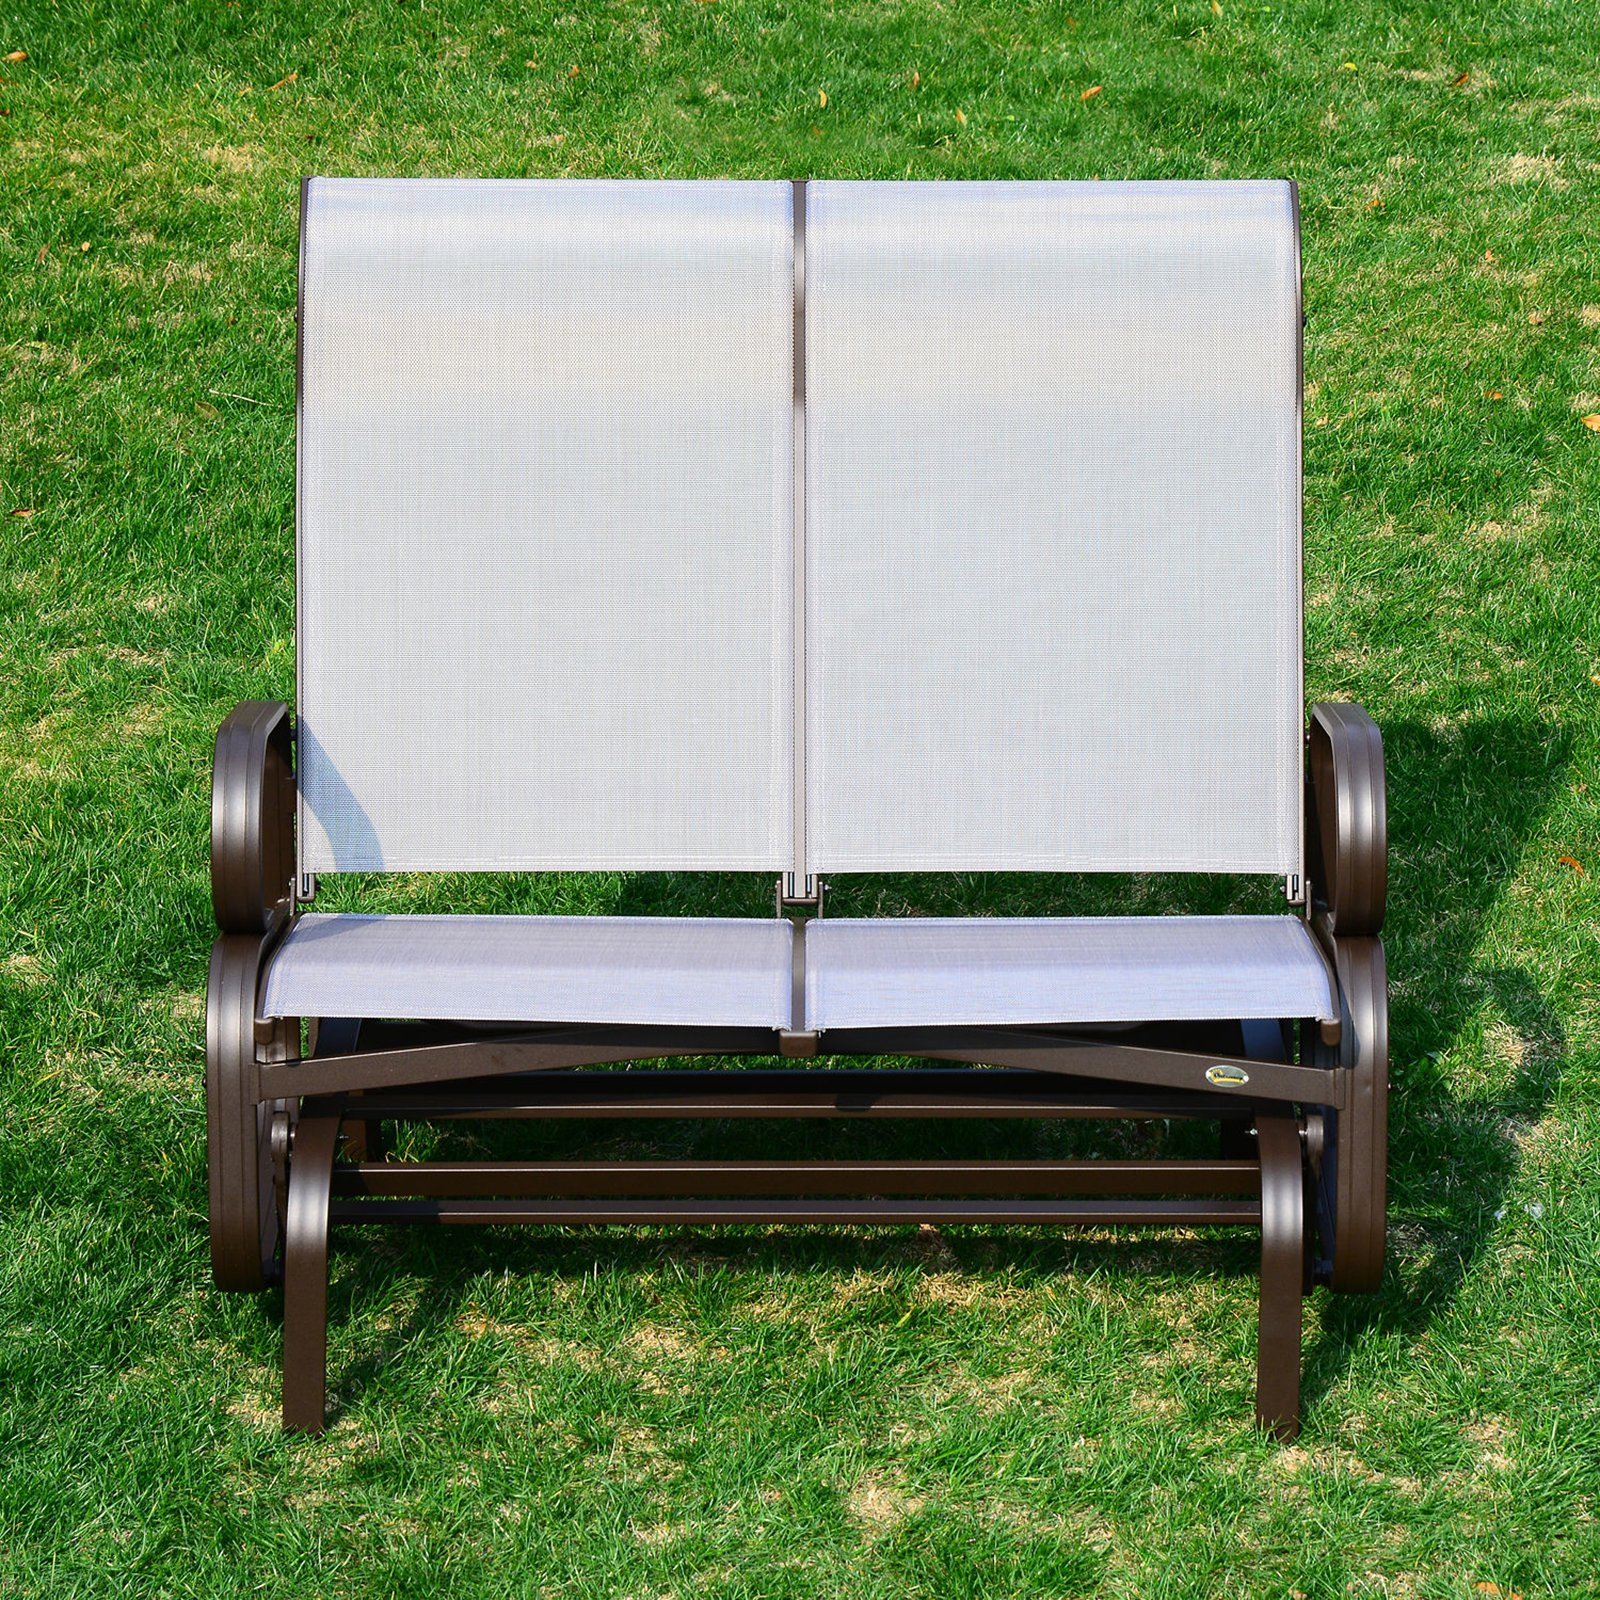 Outsunny 2 Person Mesh Fabric Patio Double Glider Chair Pertaining To Aluminum Outdoor Double Glider Benches (View 20 of 25)